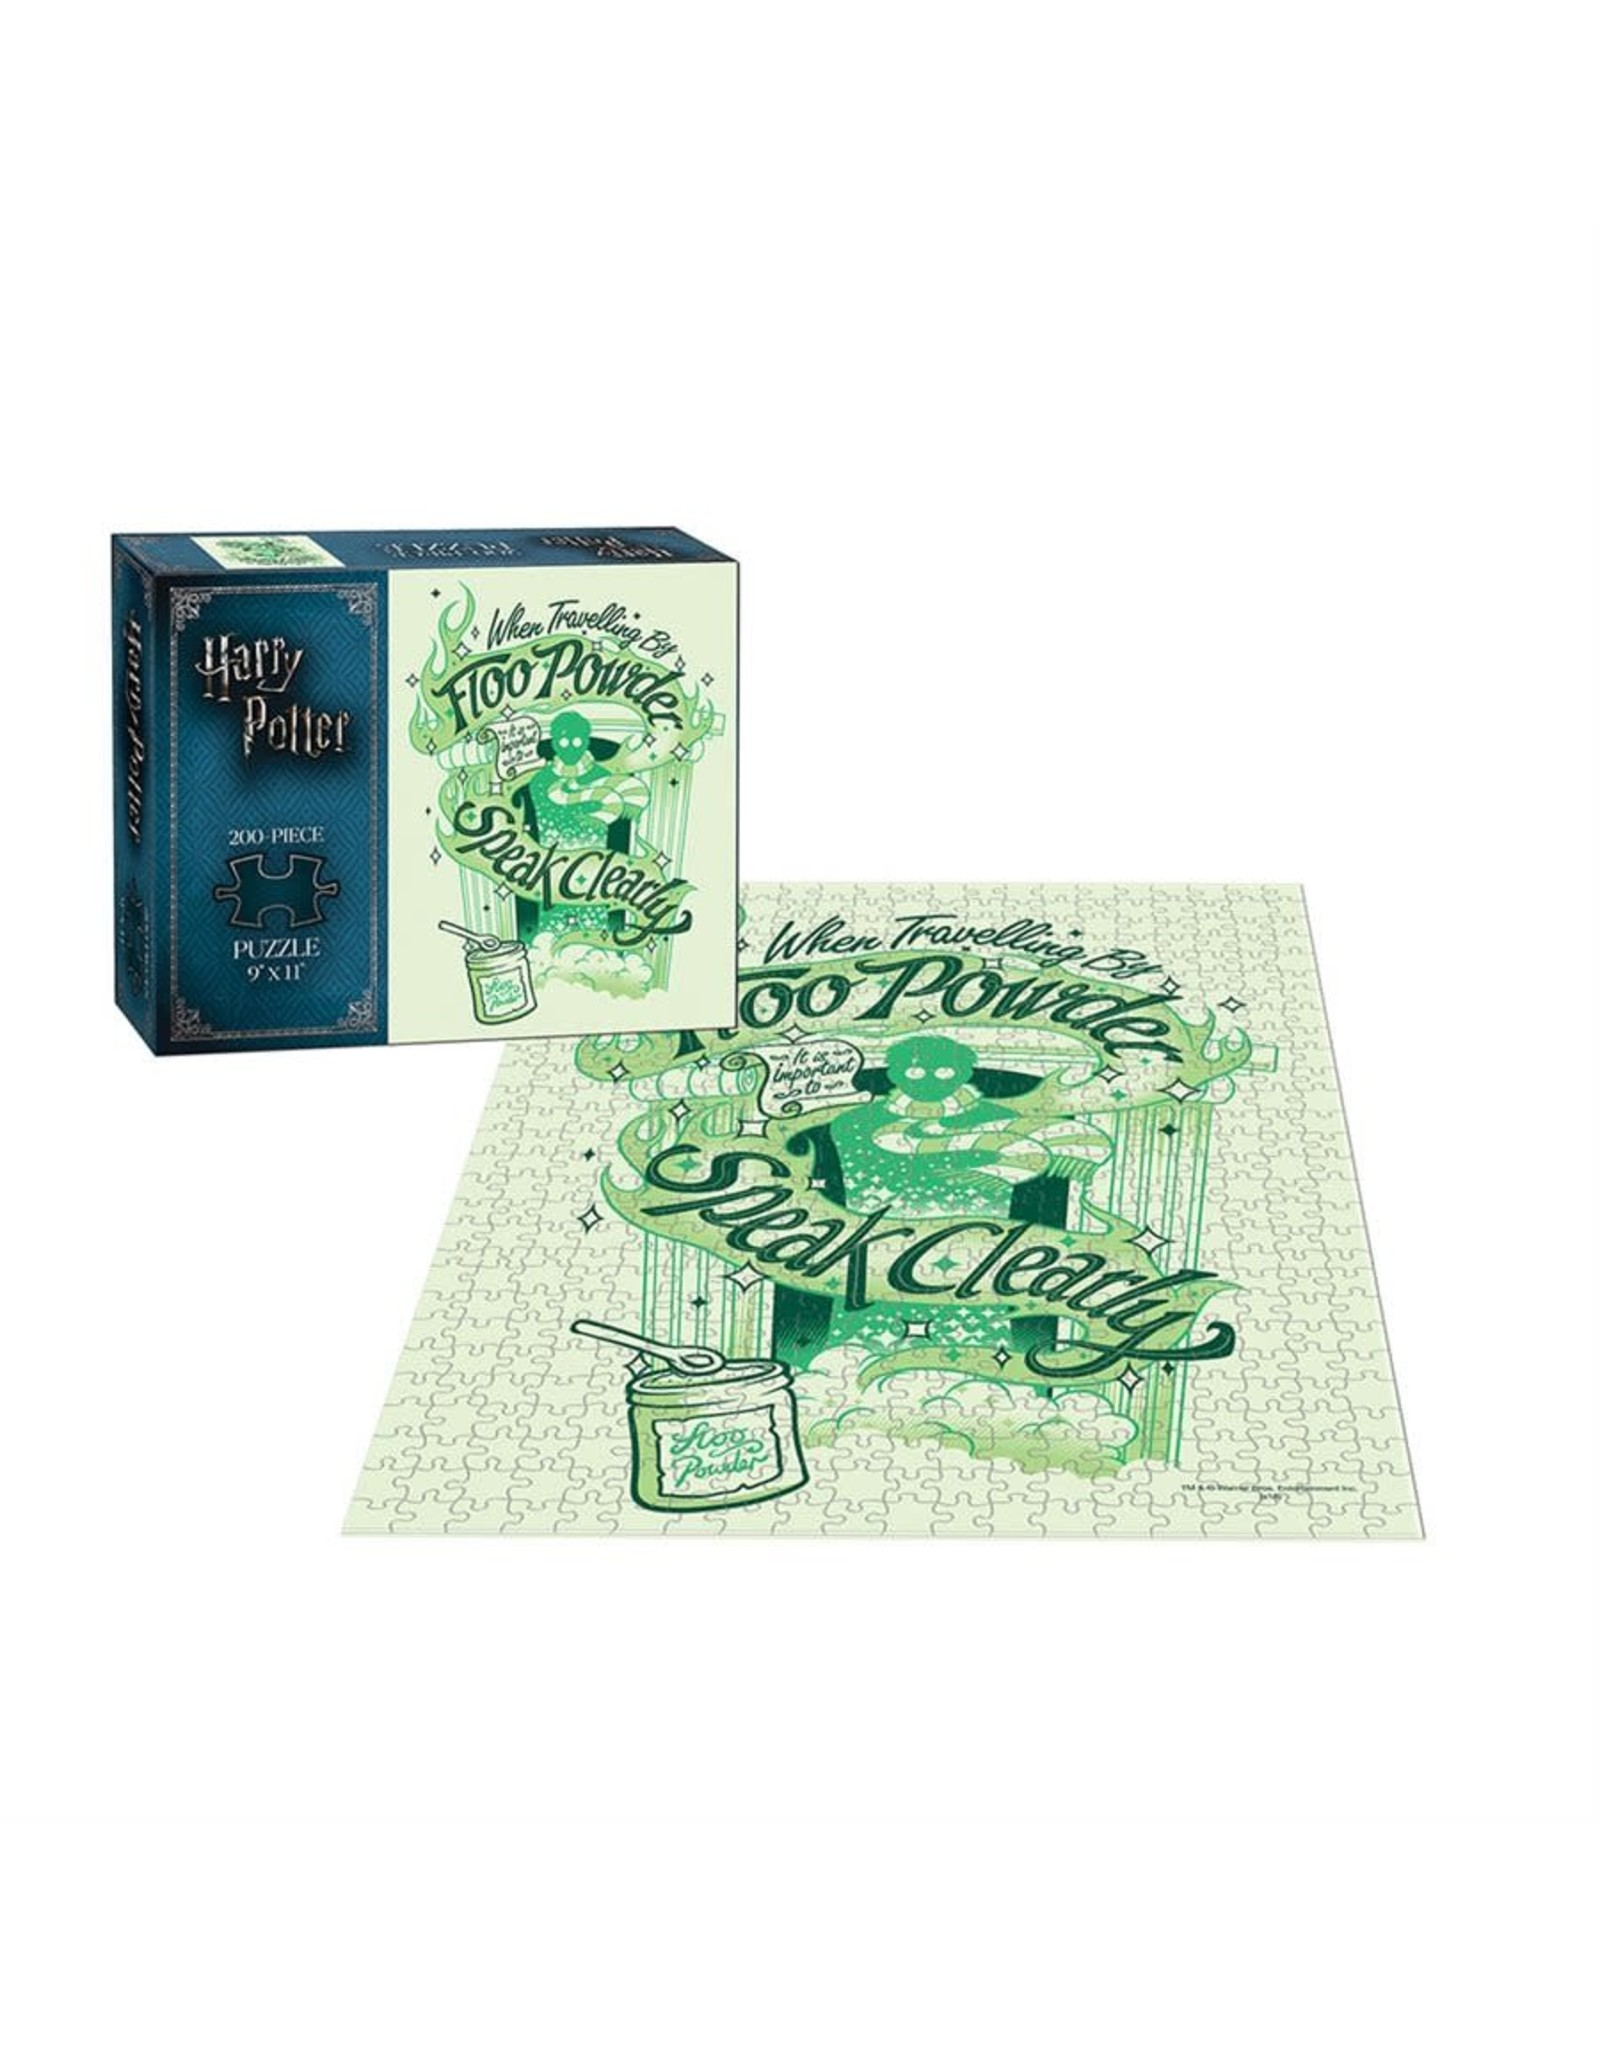 Usaopoly Puzzle: 200 Harry Potter Floo Powder